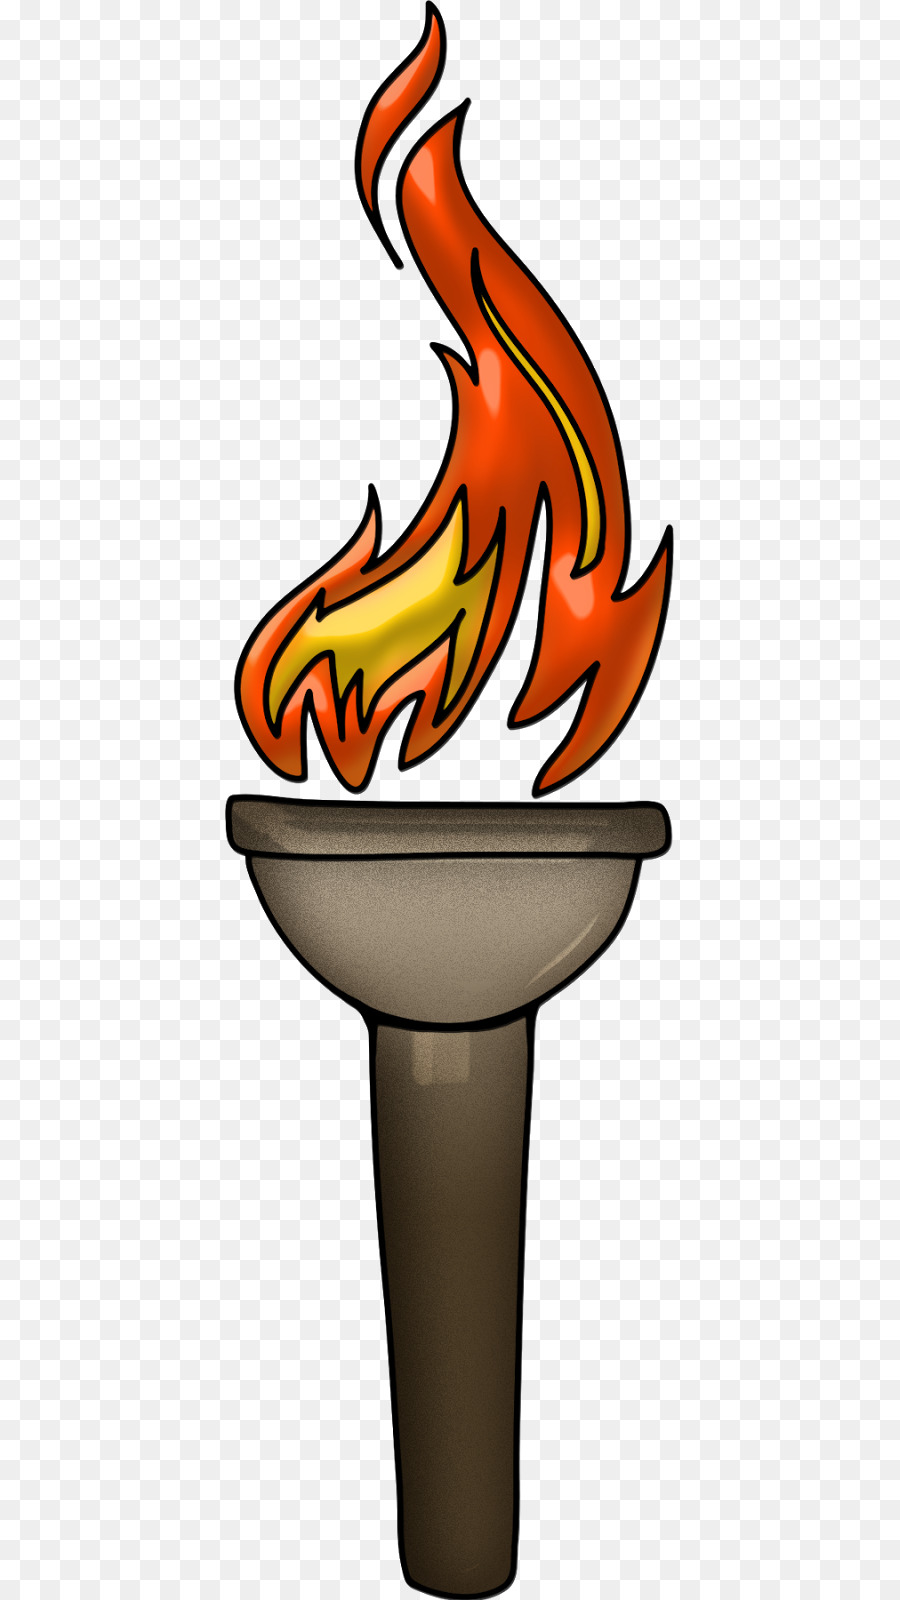 900x1600 Olympic Games 2018 Winter Olympics Torch Relay Clip Art